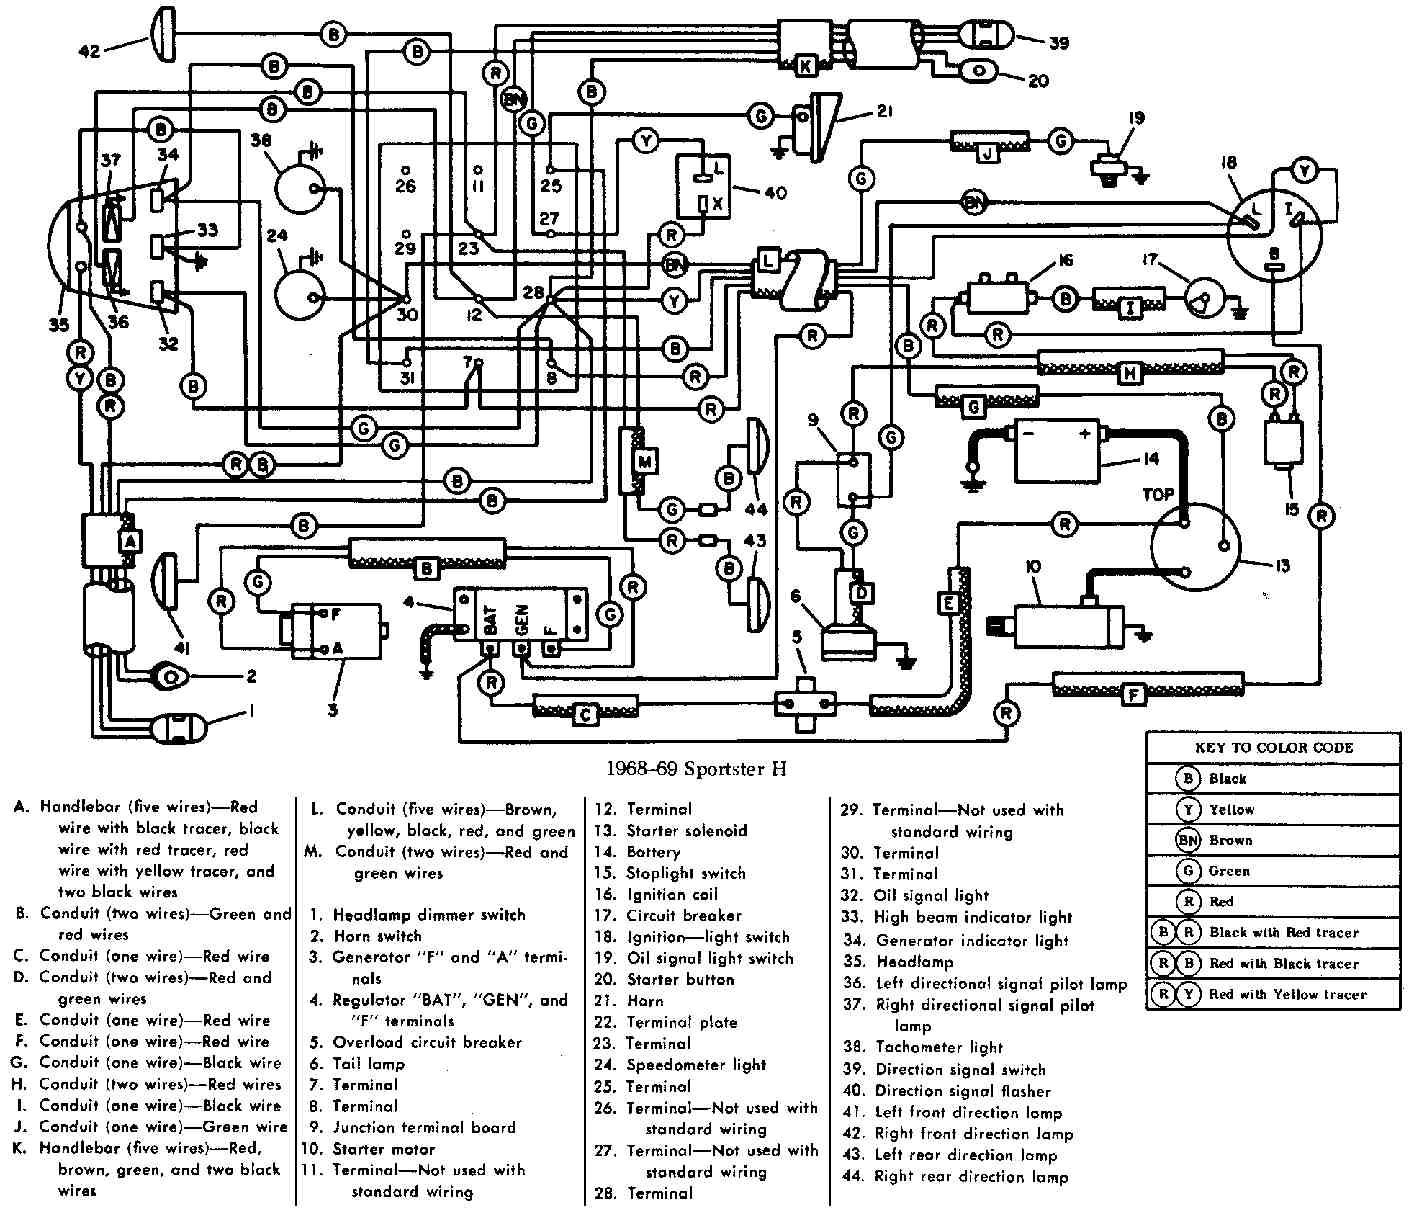 Harley Tachometer Wiring Schematic | Wiring Diagram on am/fm radio schematic diagrams, ignition switch schematic diagrams, antenna schematic diagrams, voltage regulator schematic diagrams, using meters electronic circuit schematic diagrams, gm schematic diagrams, security system schematic diagrams, voltmeter schematic diagrams, air conditioning schematic diagrams,